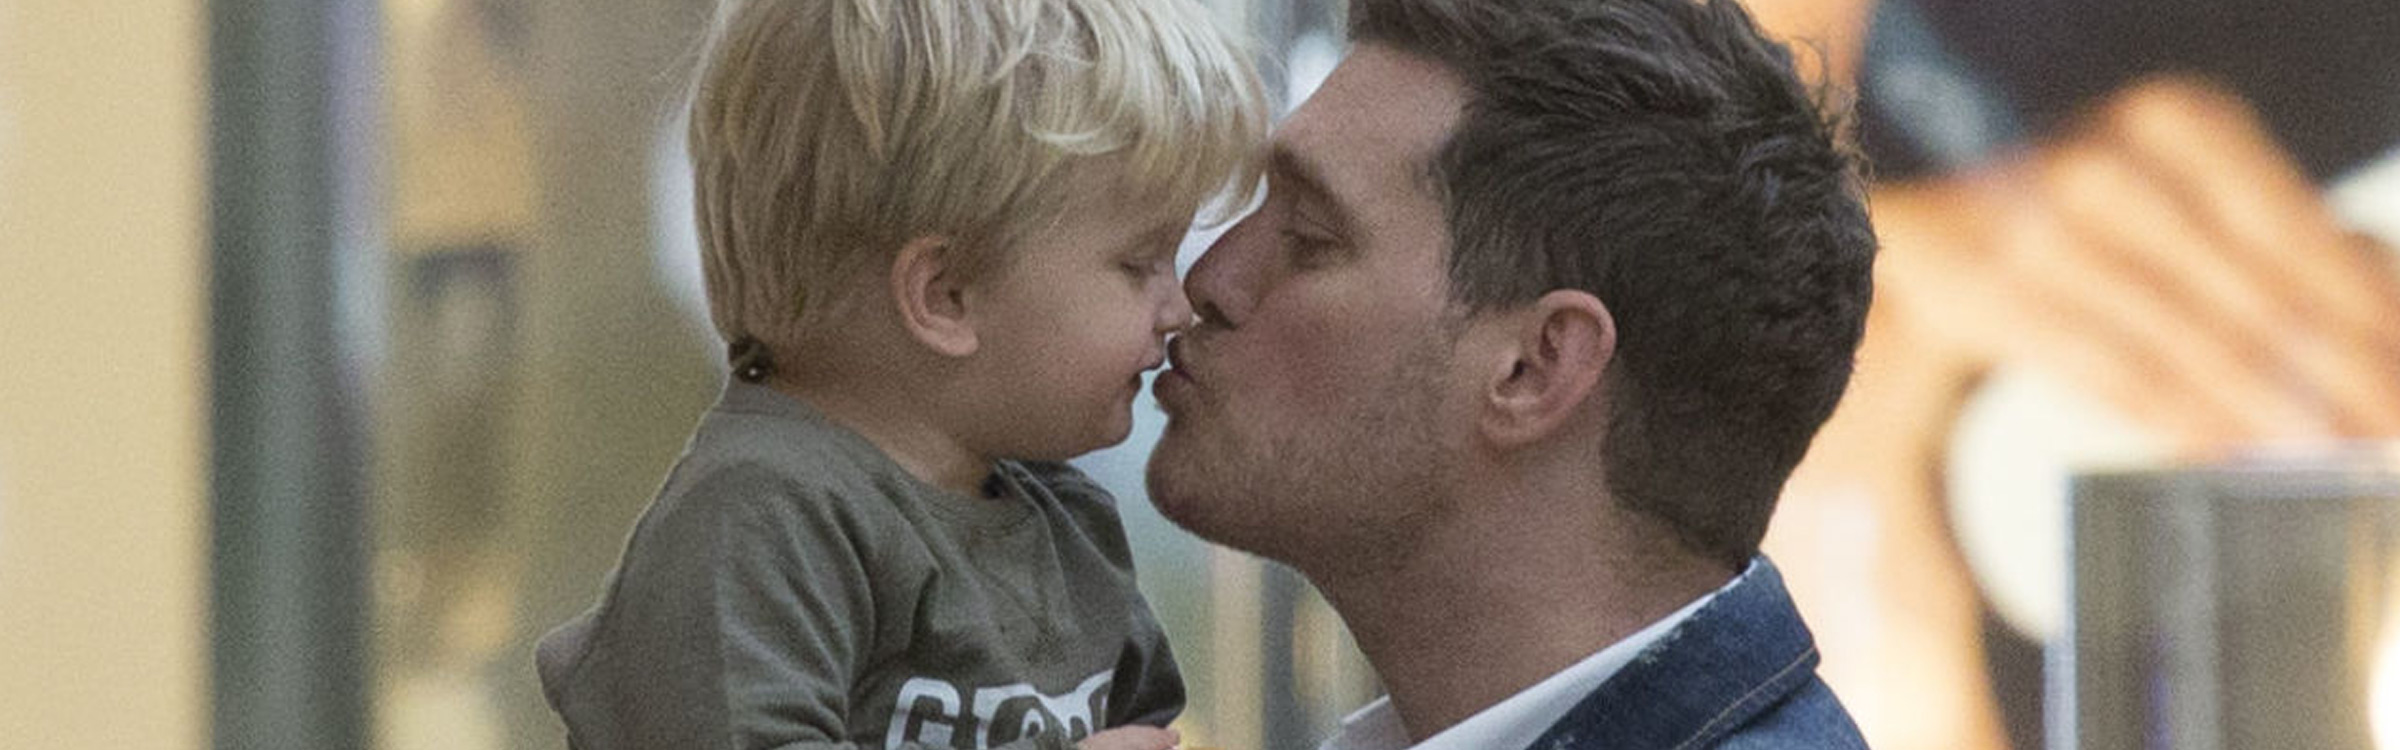 Buble zoontje header